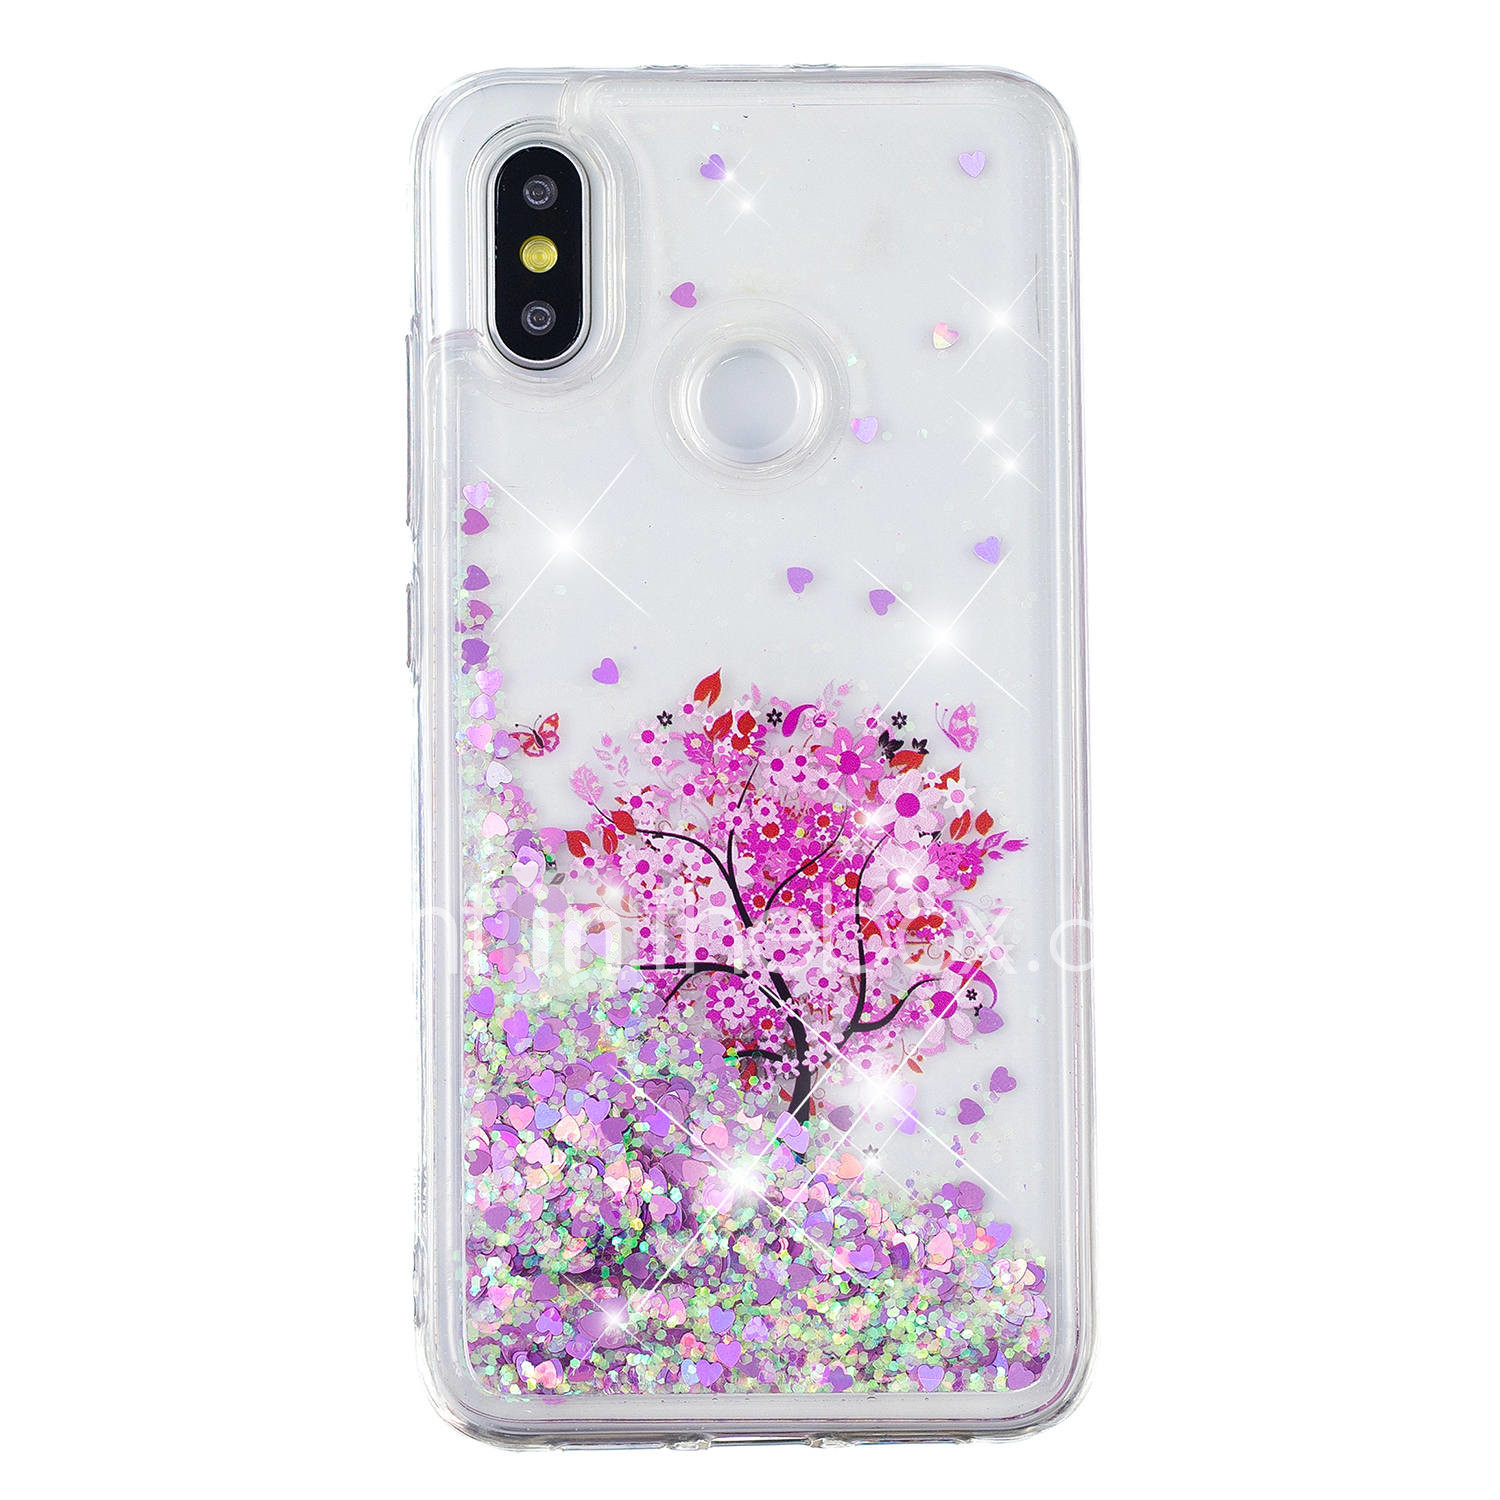 Case For Xiaomi Redmi Note 5 Pro Mi 8 Flowing Liquid Pattern